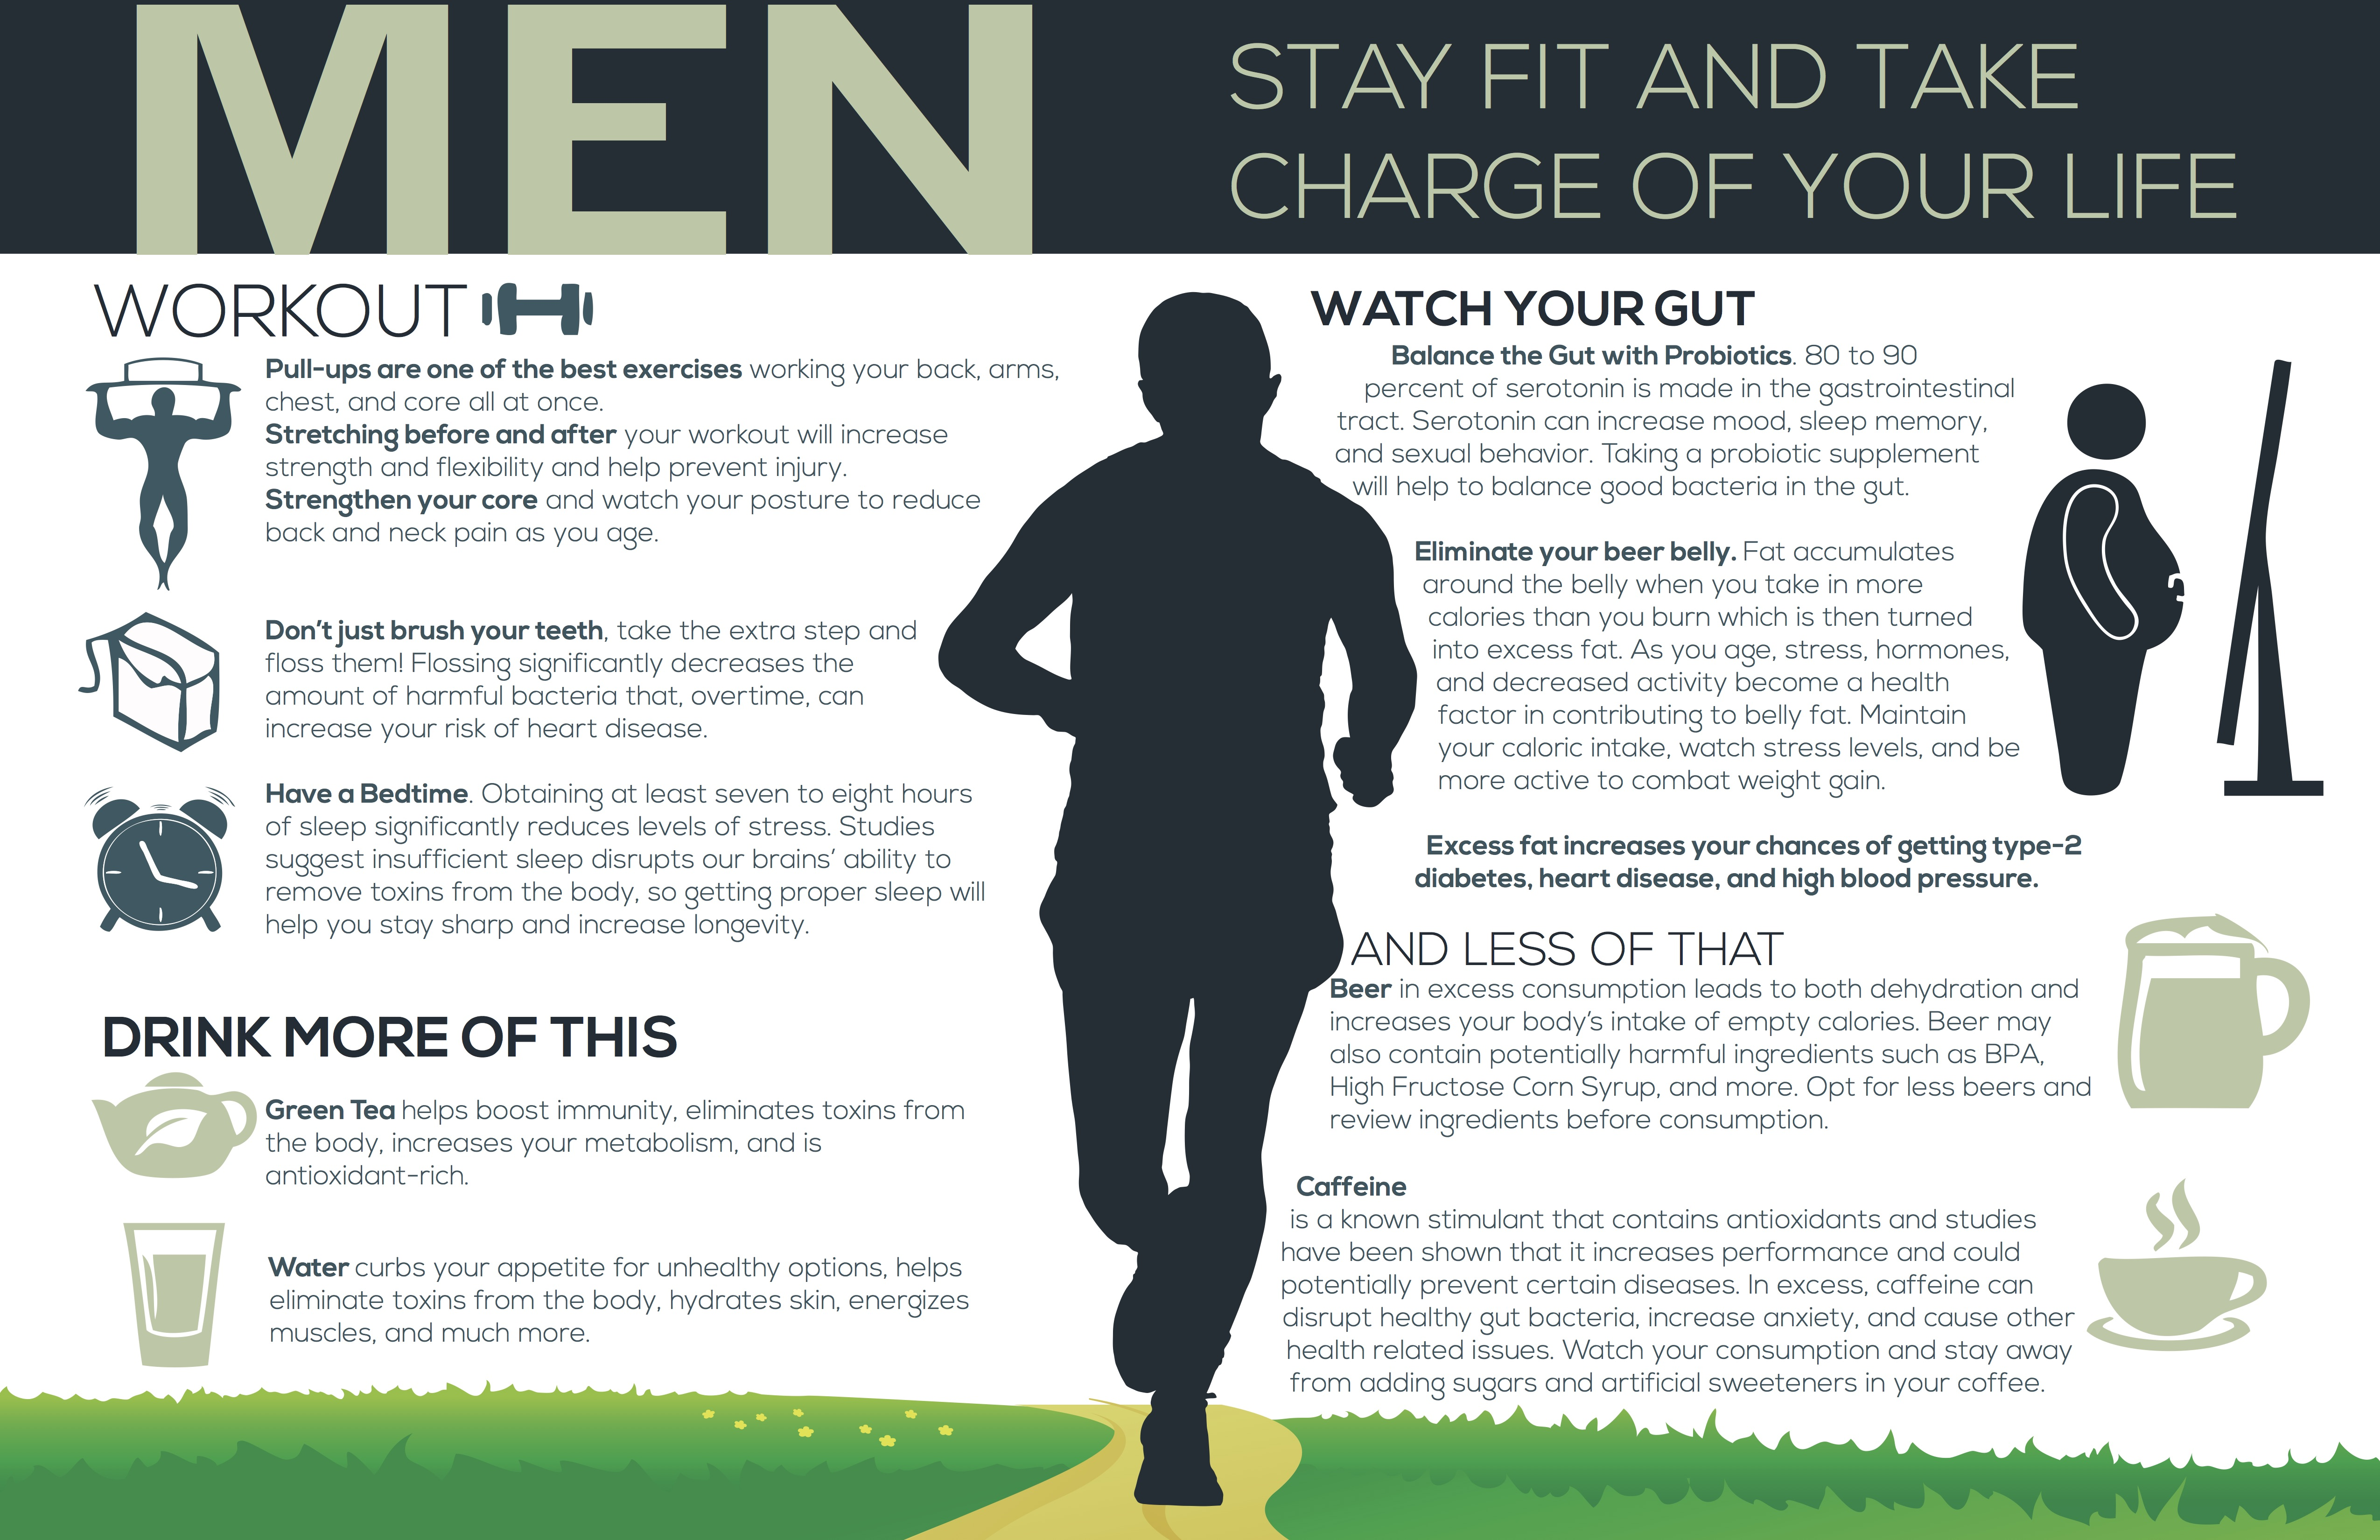 Men Stay Fit and Take Charge of Your Life